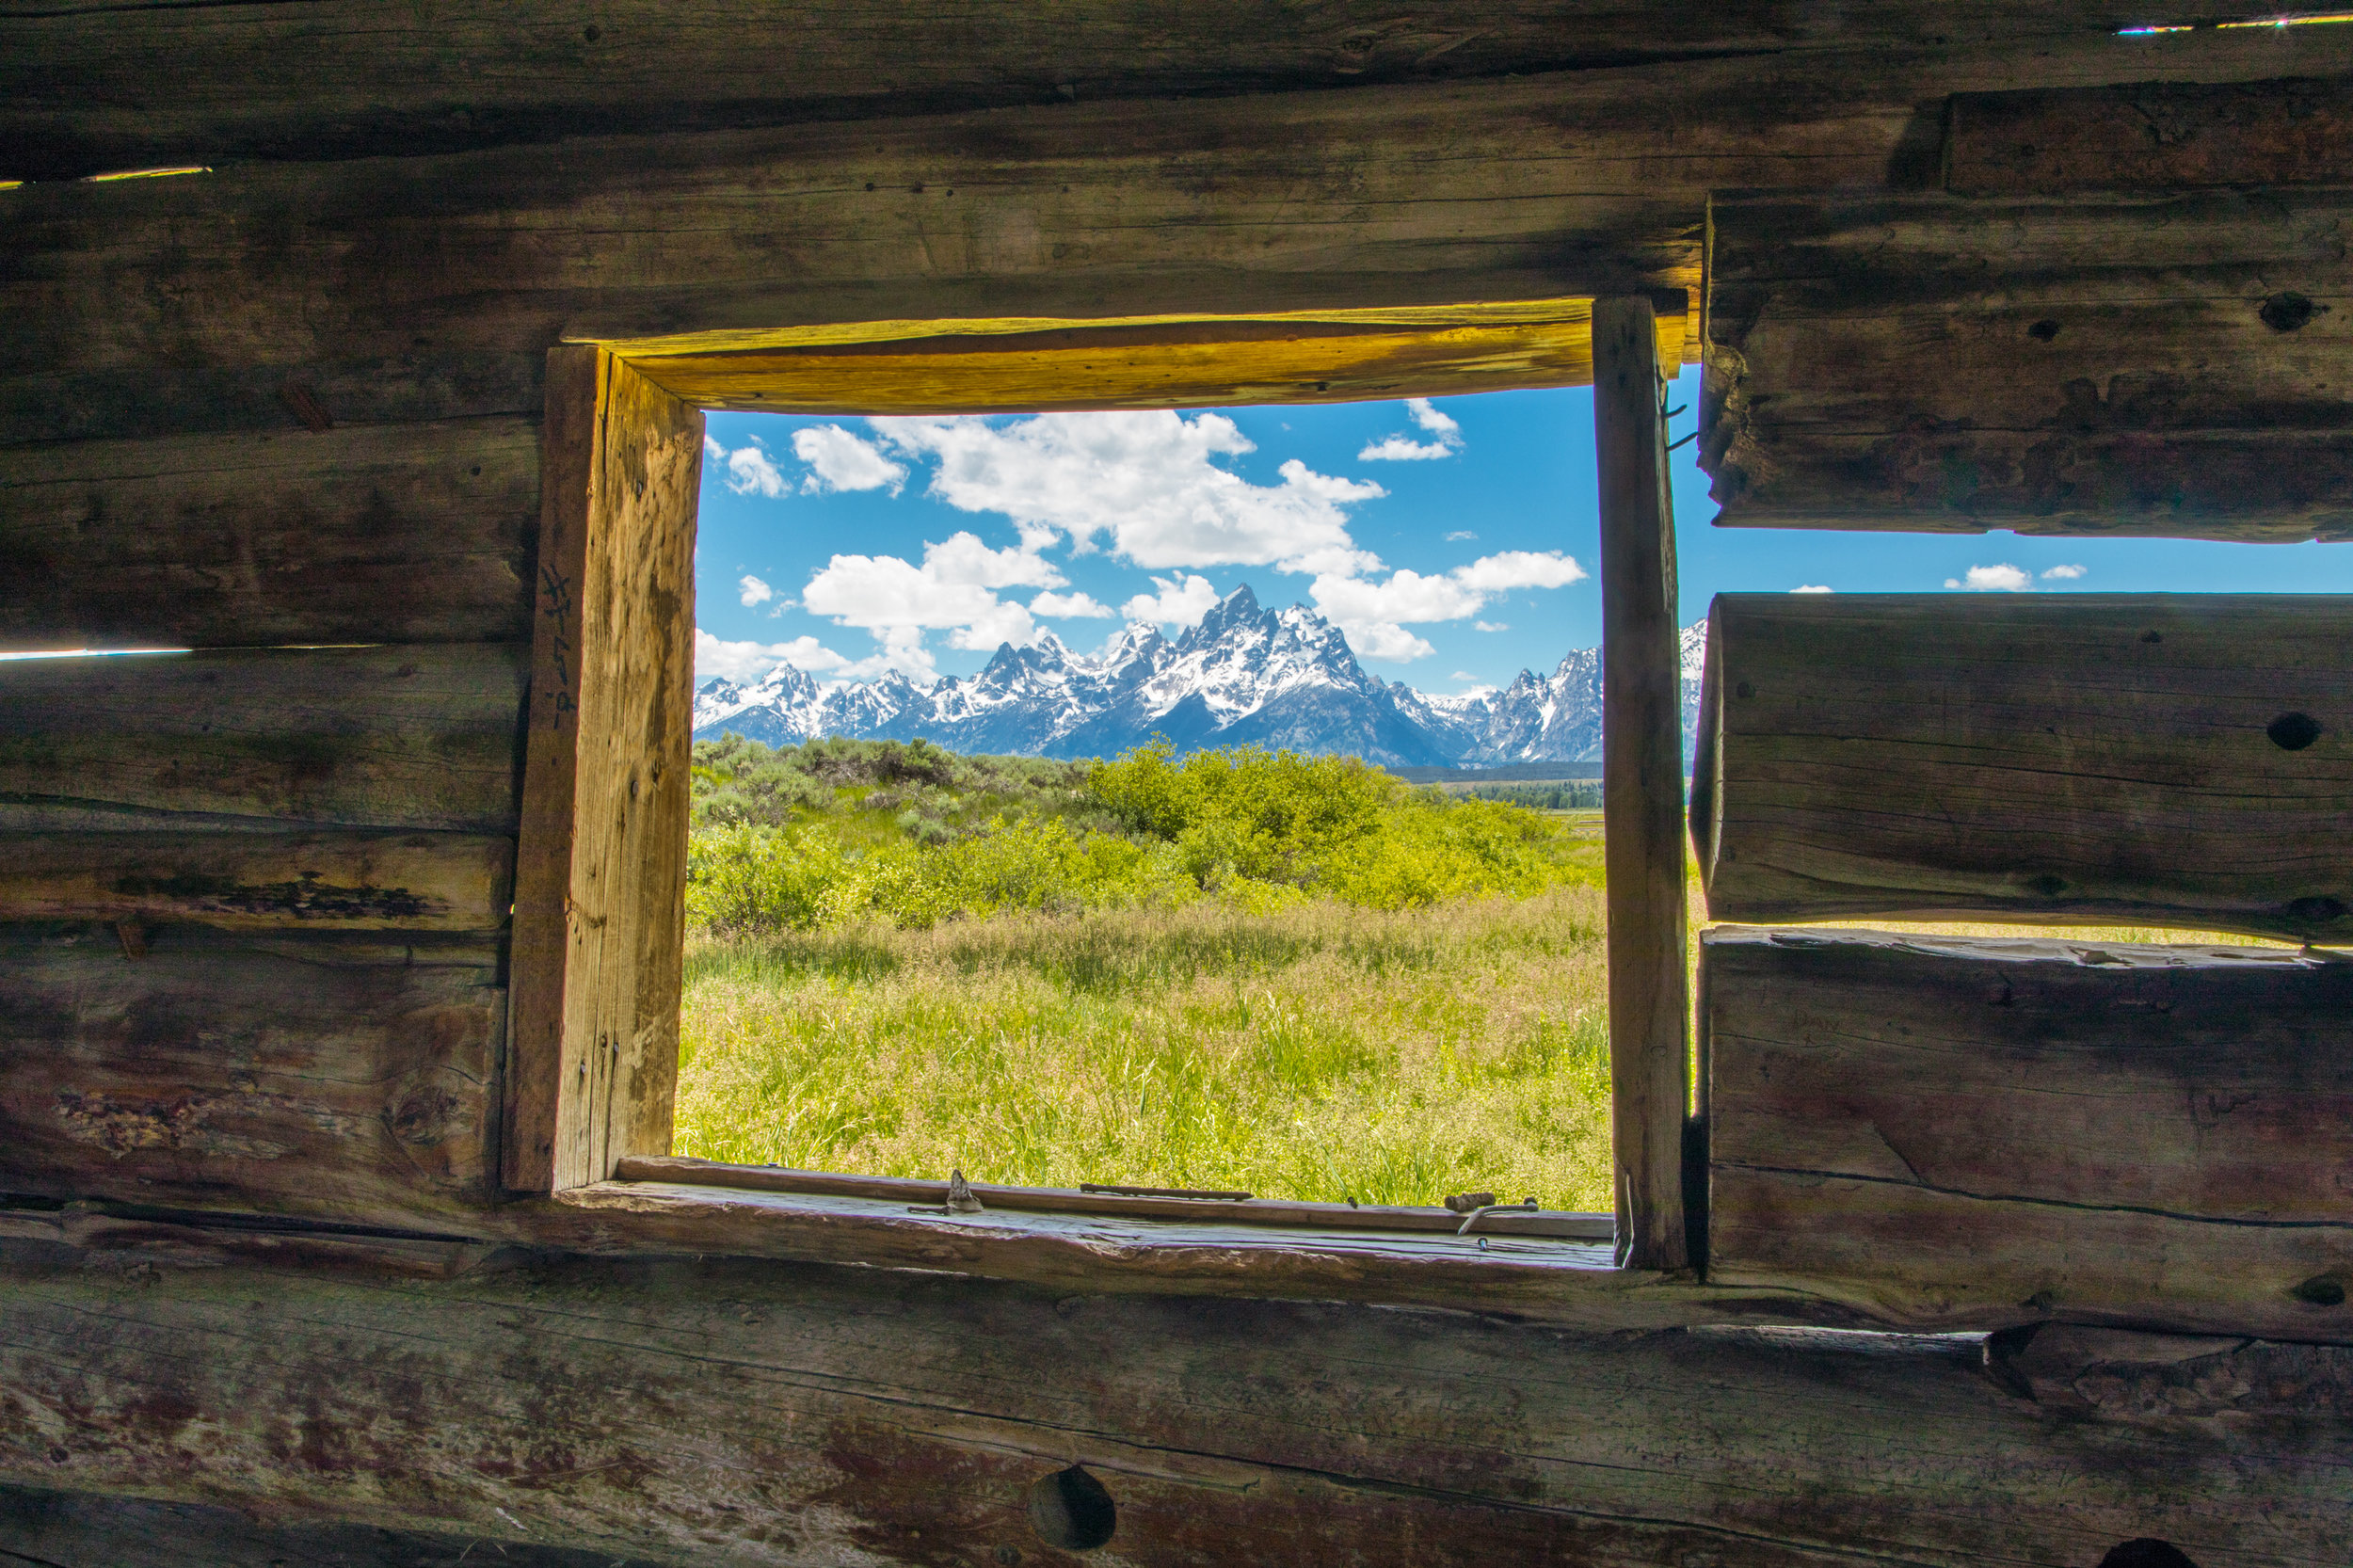 Cunningham Cabin, Grand Teton National Park, Image # 8185